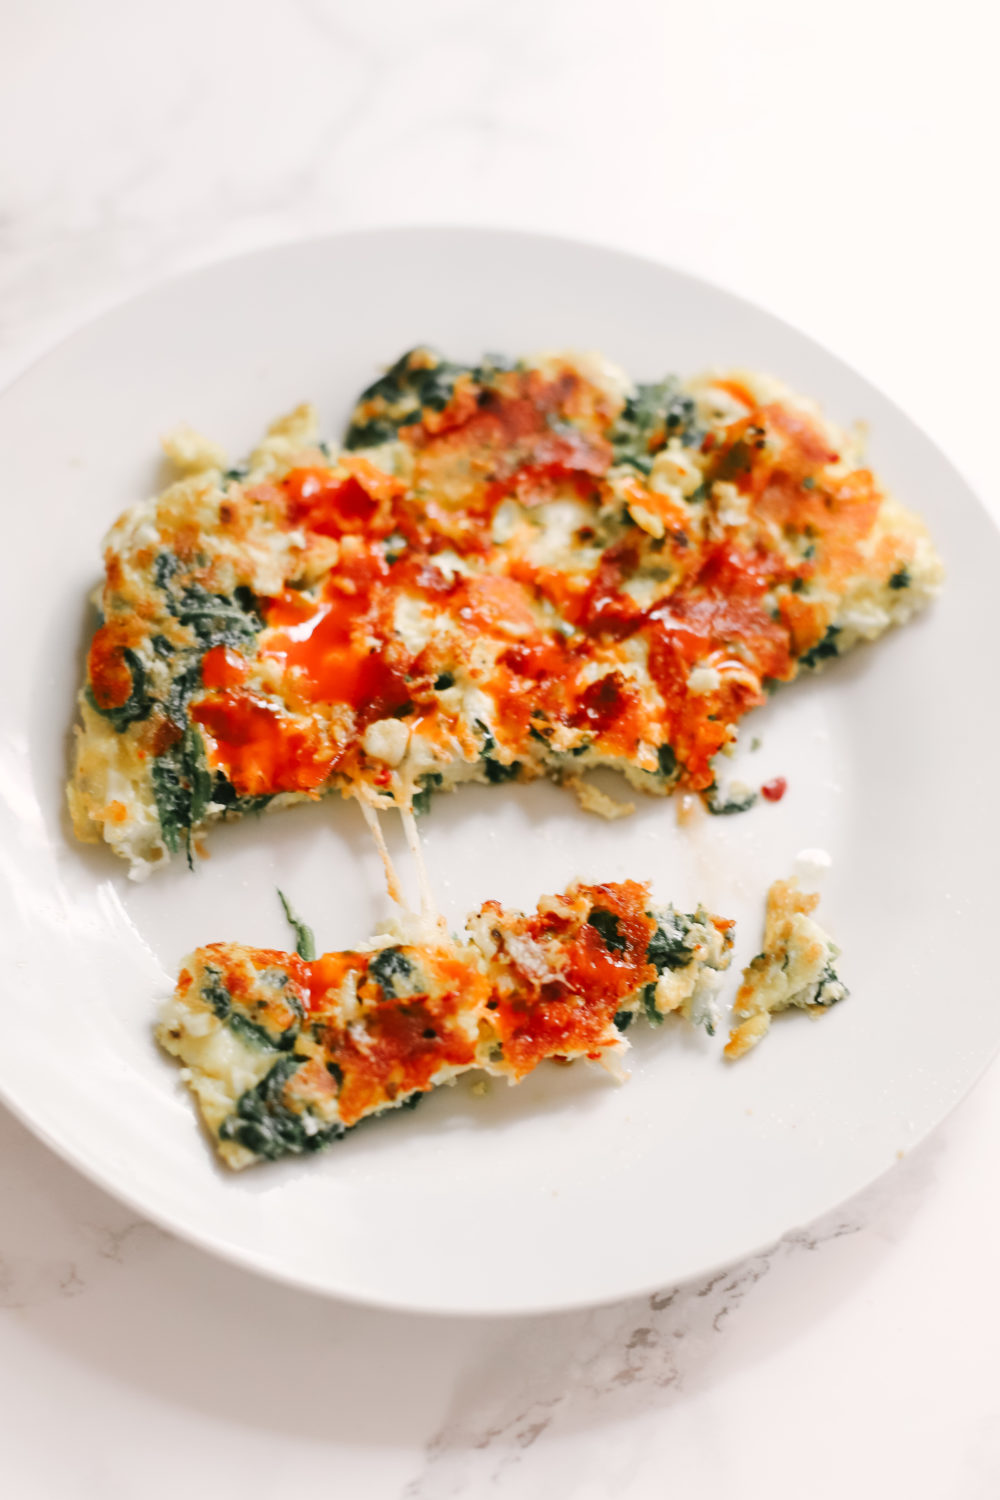 An egg frittata naturally low in carbs and keto friendly. A quick breakfast for every morning or after intermittent fasting, as it will aid in weight loss. Ketogenic | Fried Egg | Omelette | Spinach and Eggs | Spinach and Cheese | Breakfast | Brunch | Gluten-Free | Low carbs | Atkins | Easy | Weight Loss | Burn Fat | Healthy Recipes | Veggies |